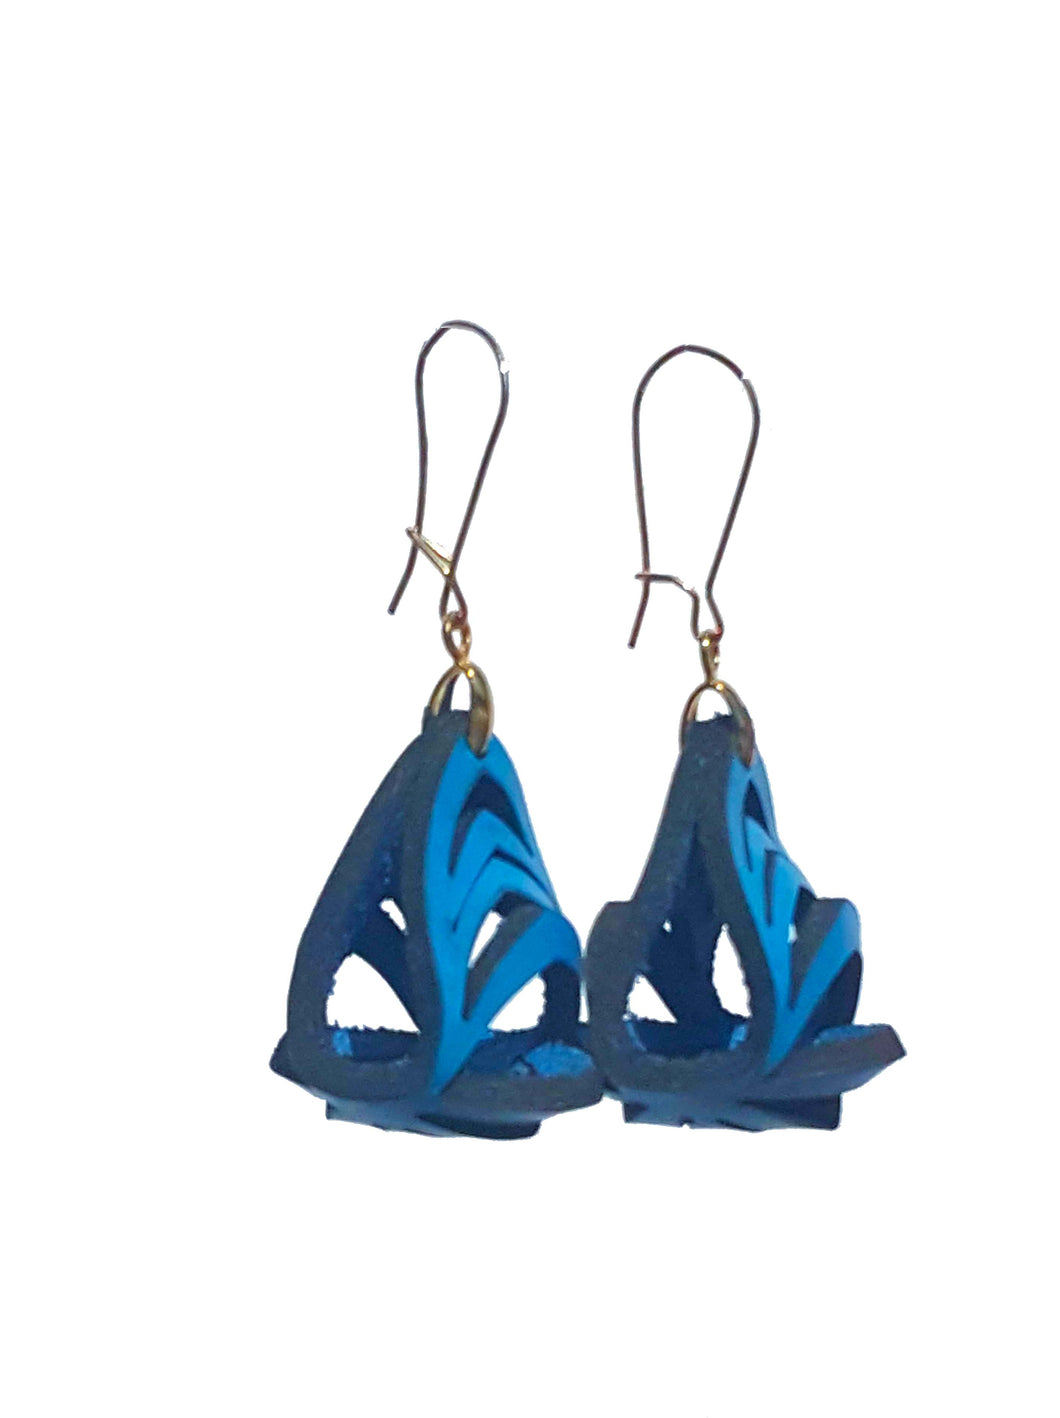 Ava Mini Leather Earrings - Sky - Amber Poitier Inc.